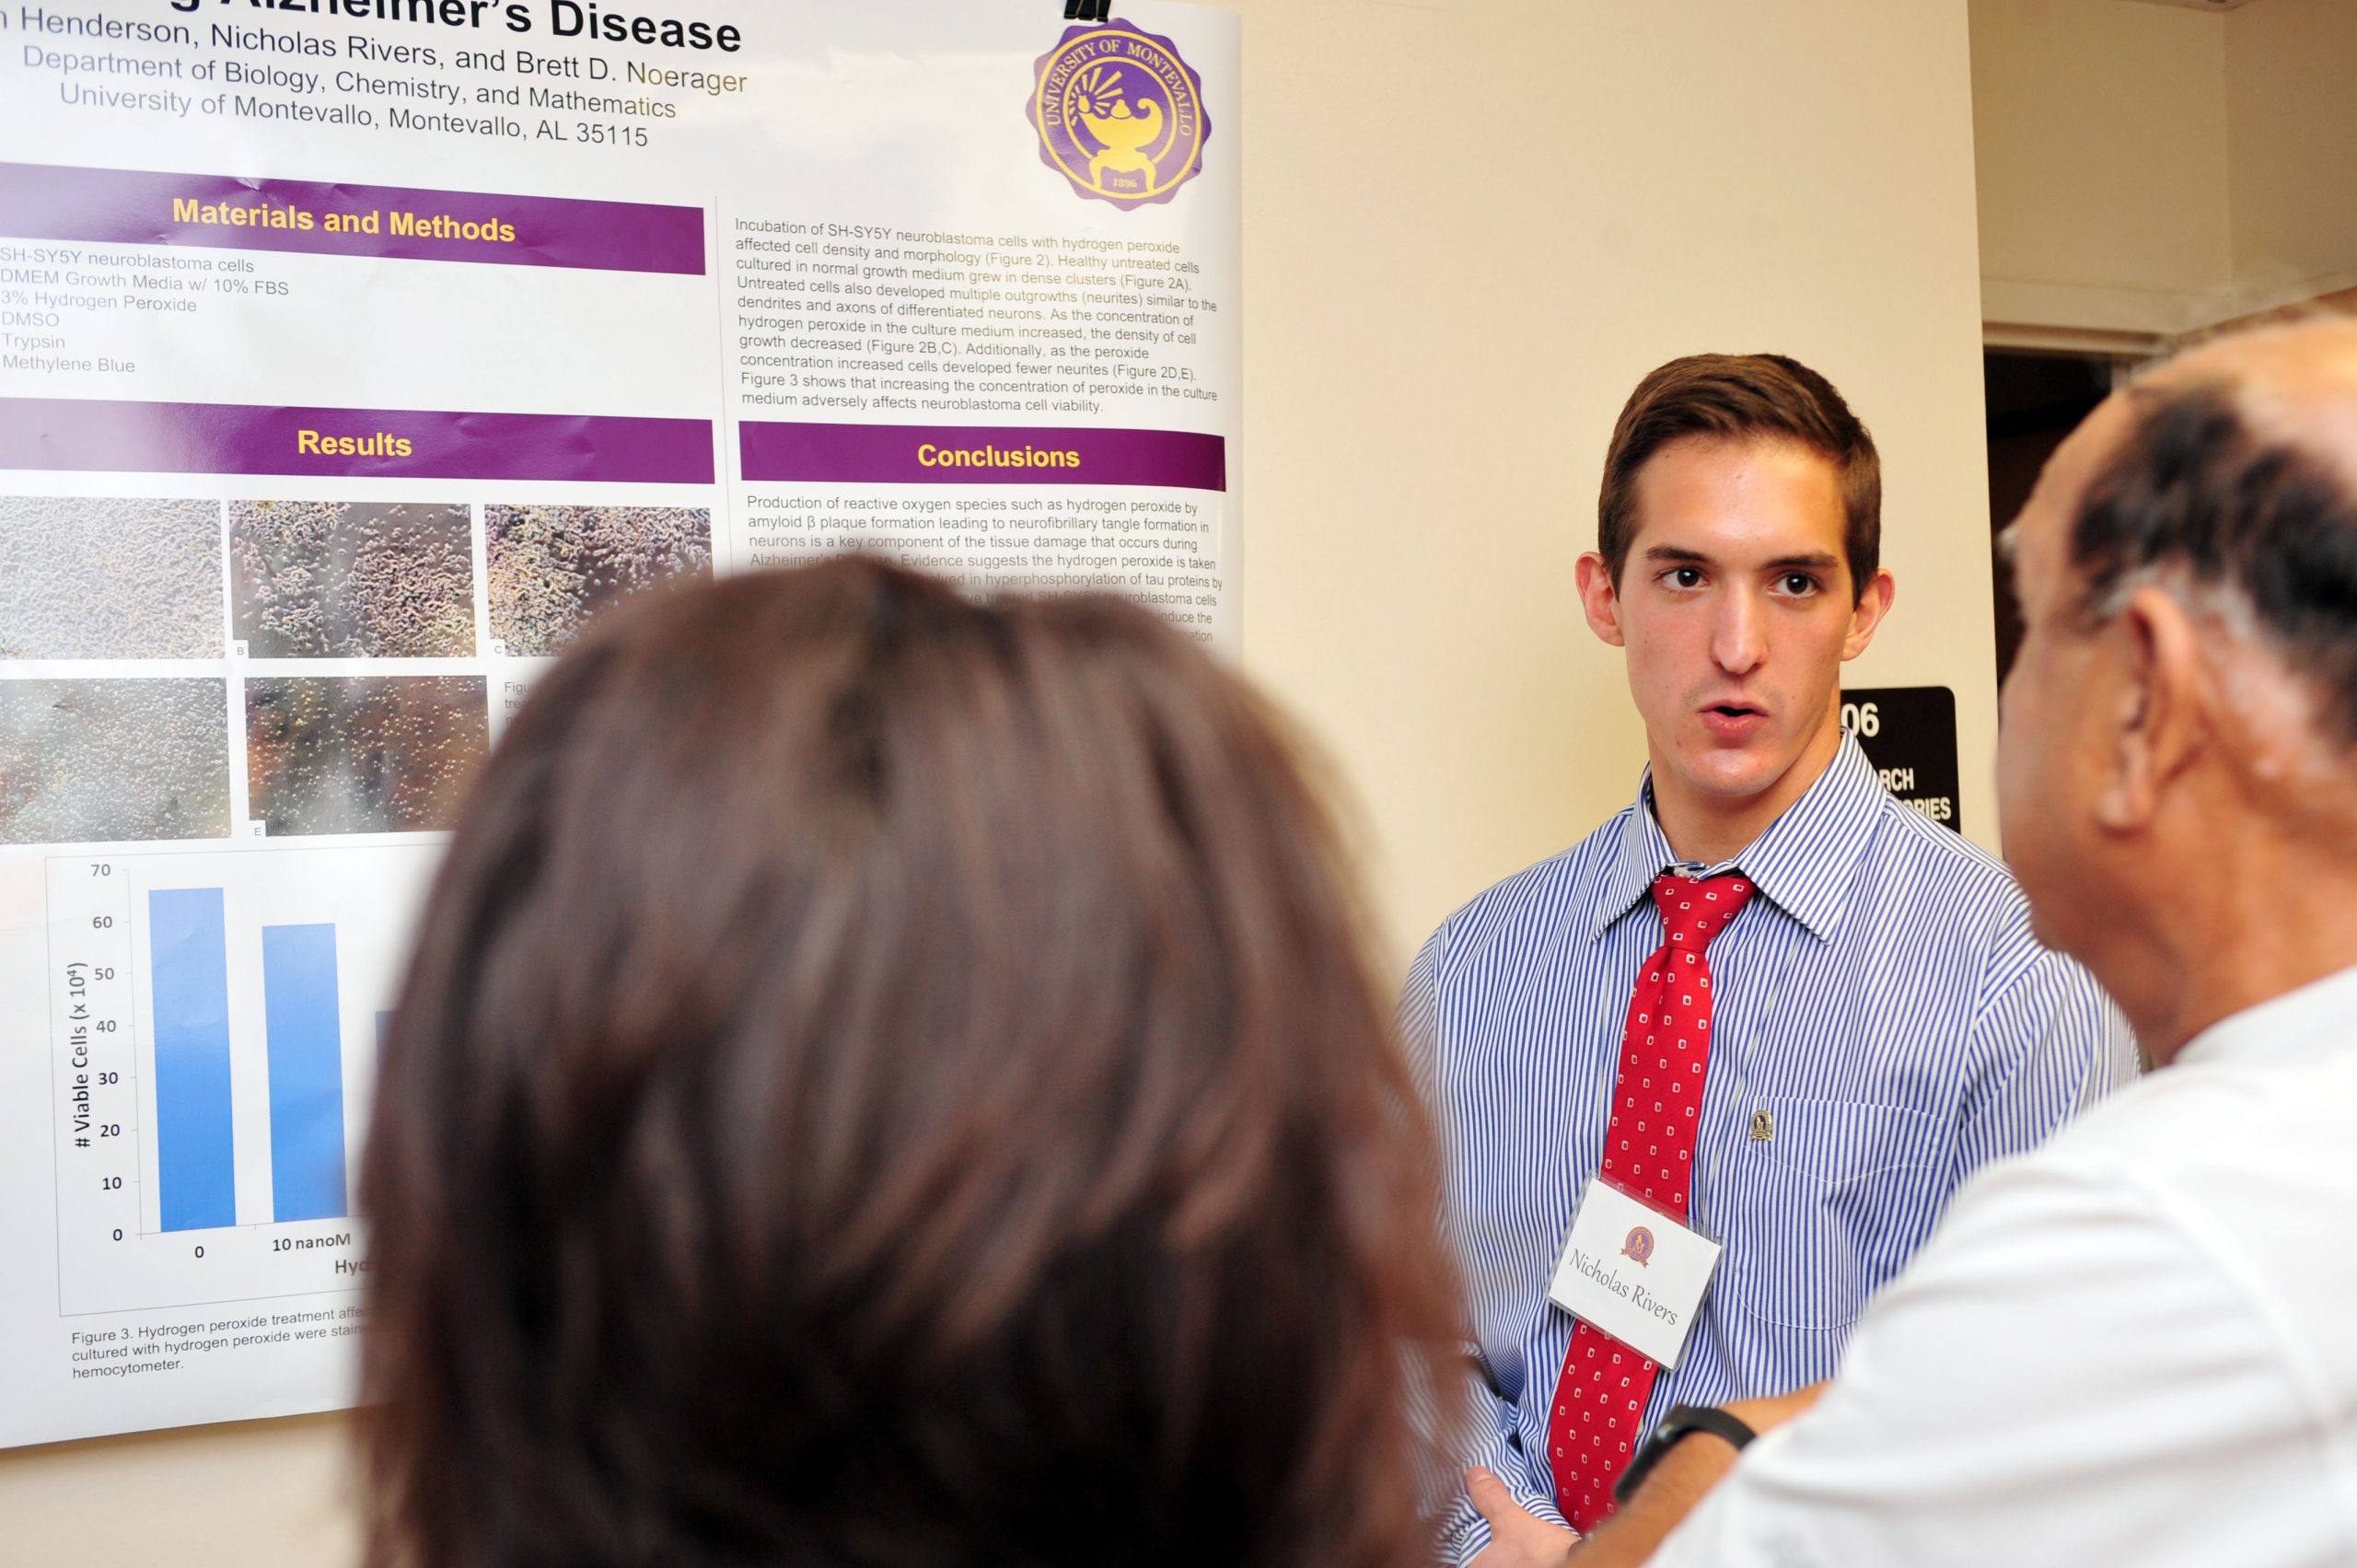 A Montevallo student presents findings at undergraduate research day.